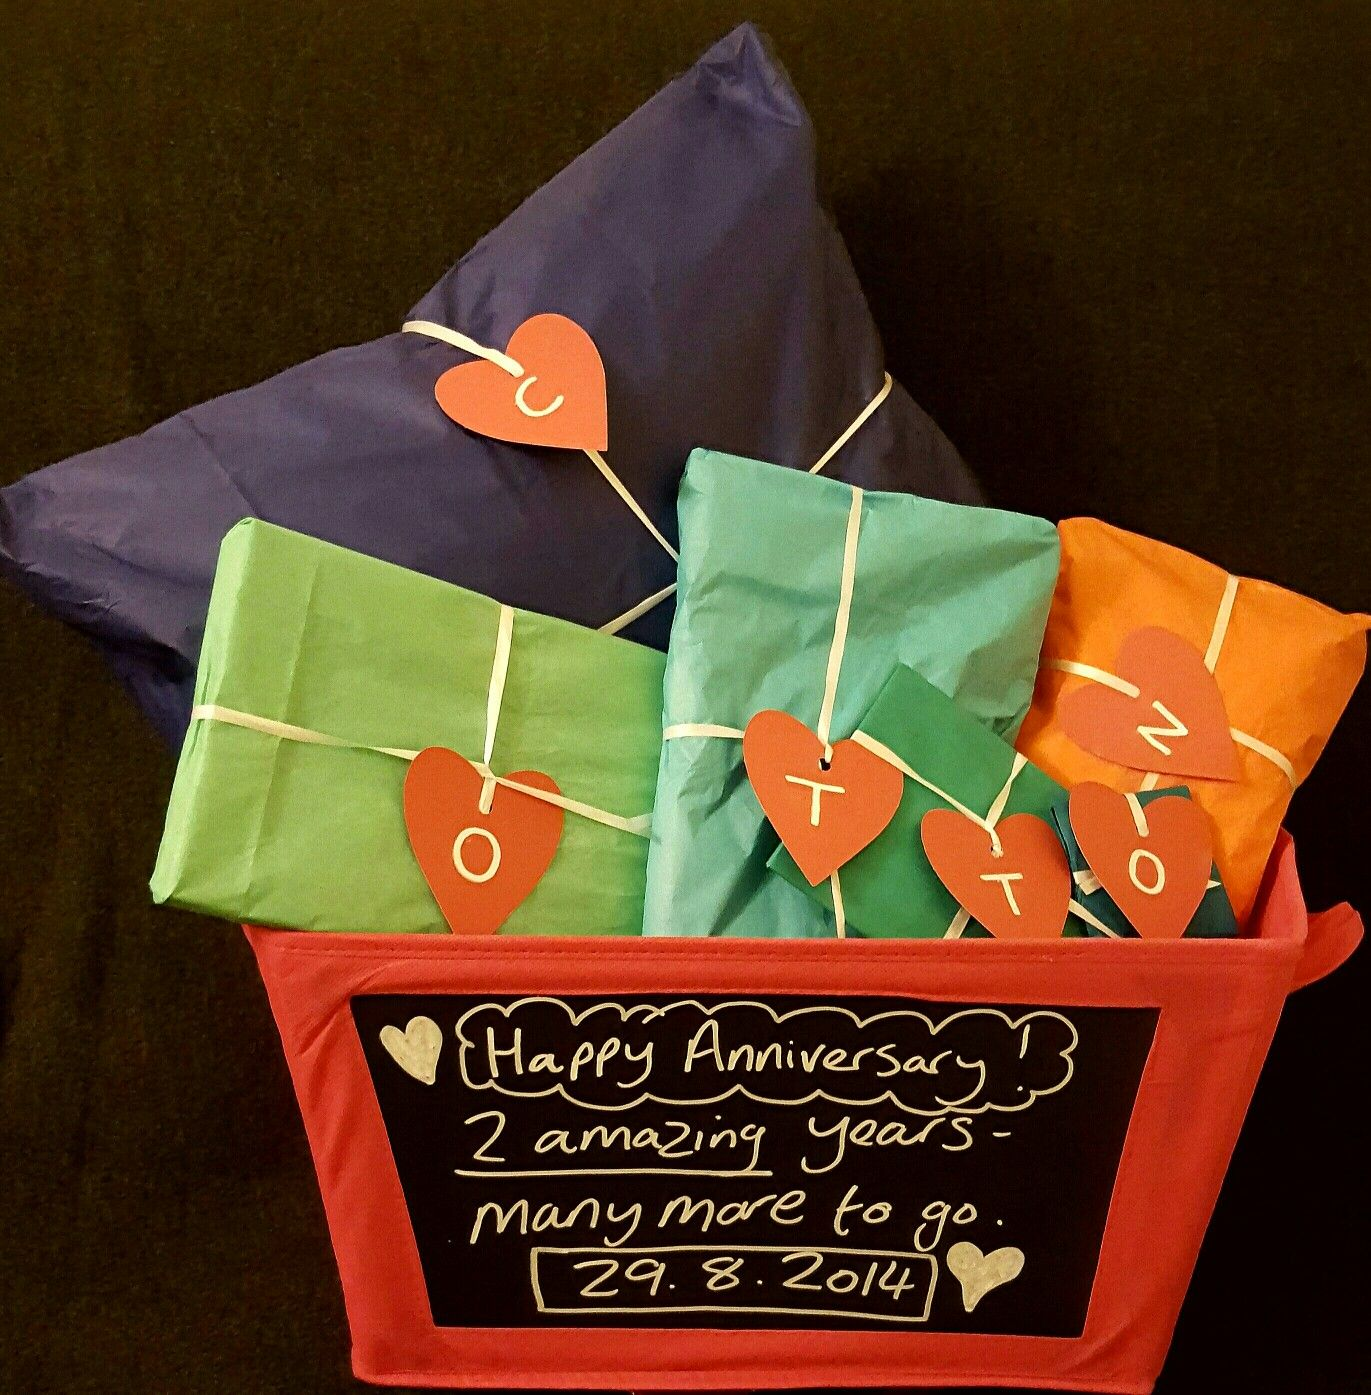 Cotton Wedding Anniversary Gifts For Him: 2nd Anniversary Gift For Hubby Using Cotton As An Acronym